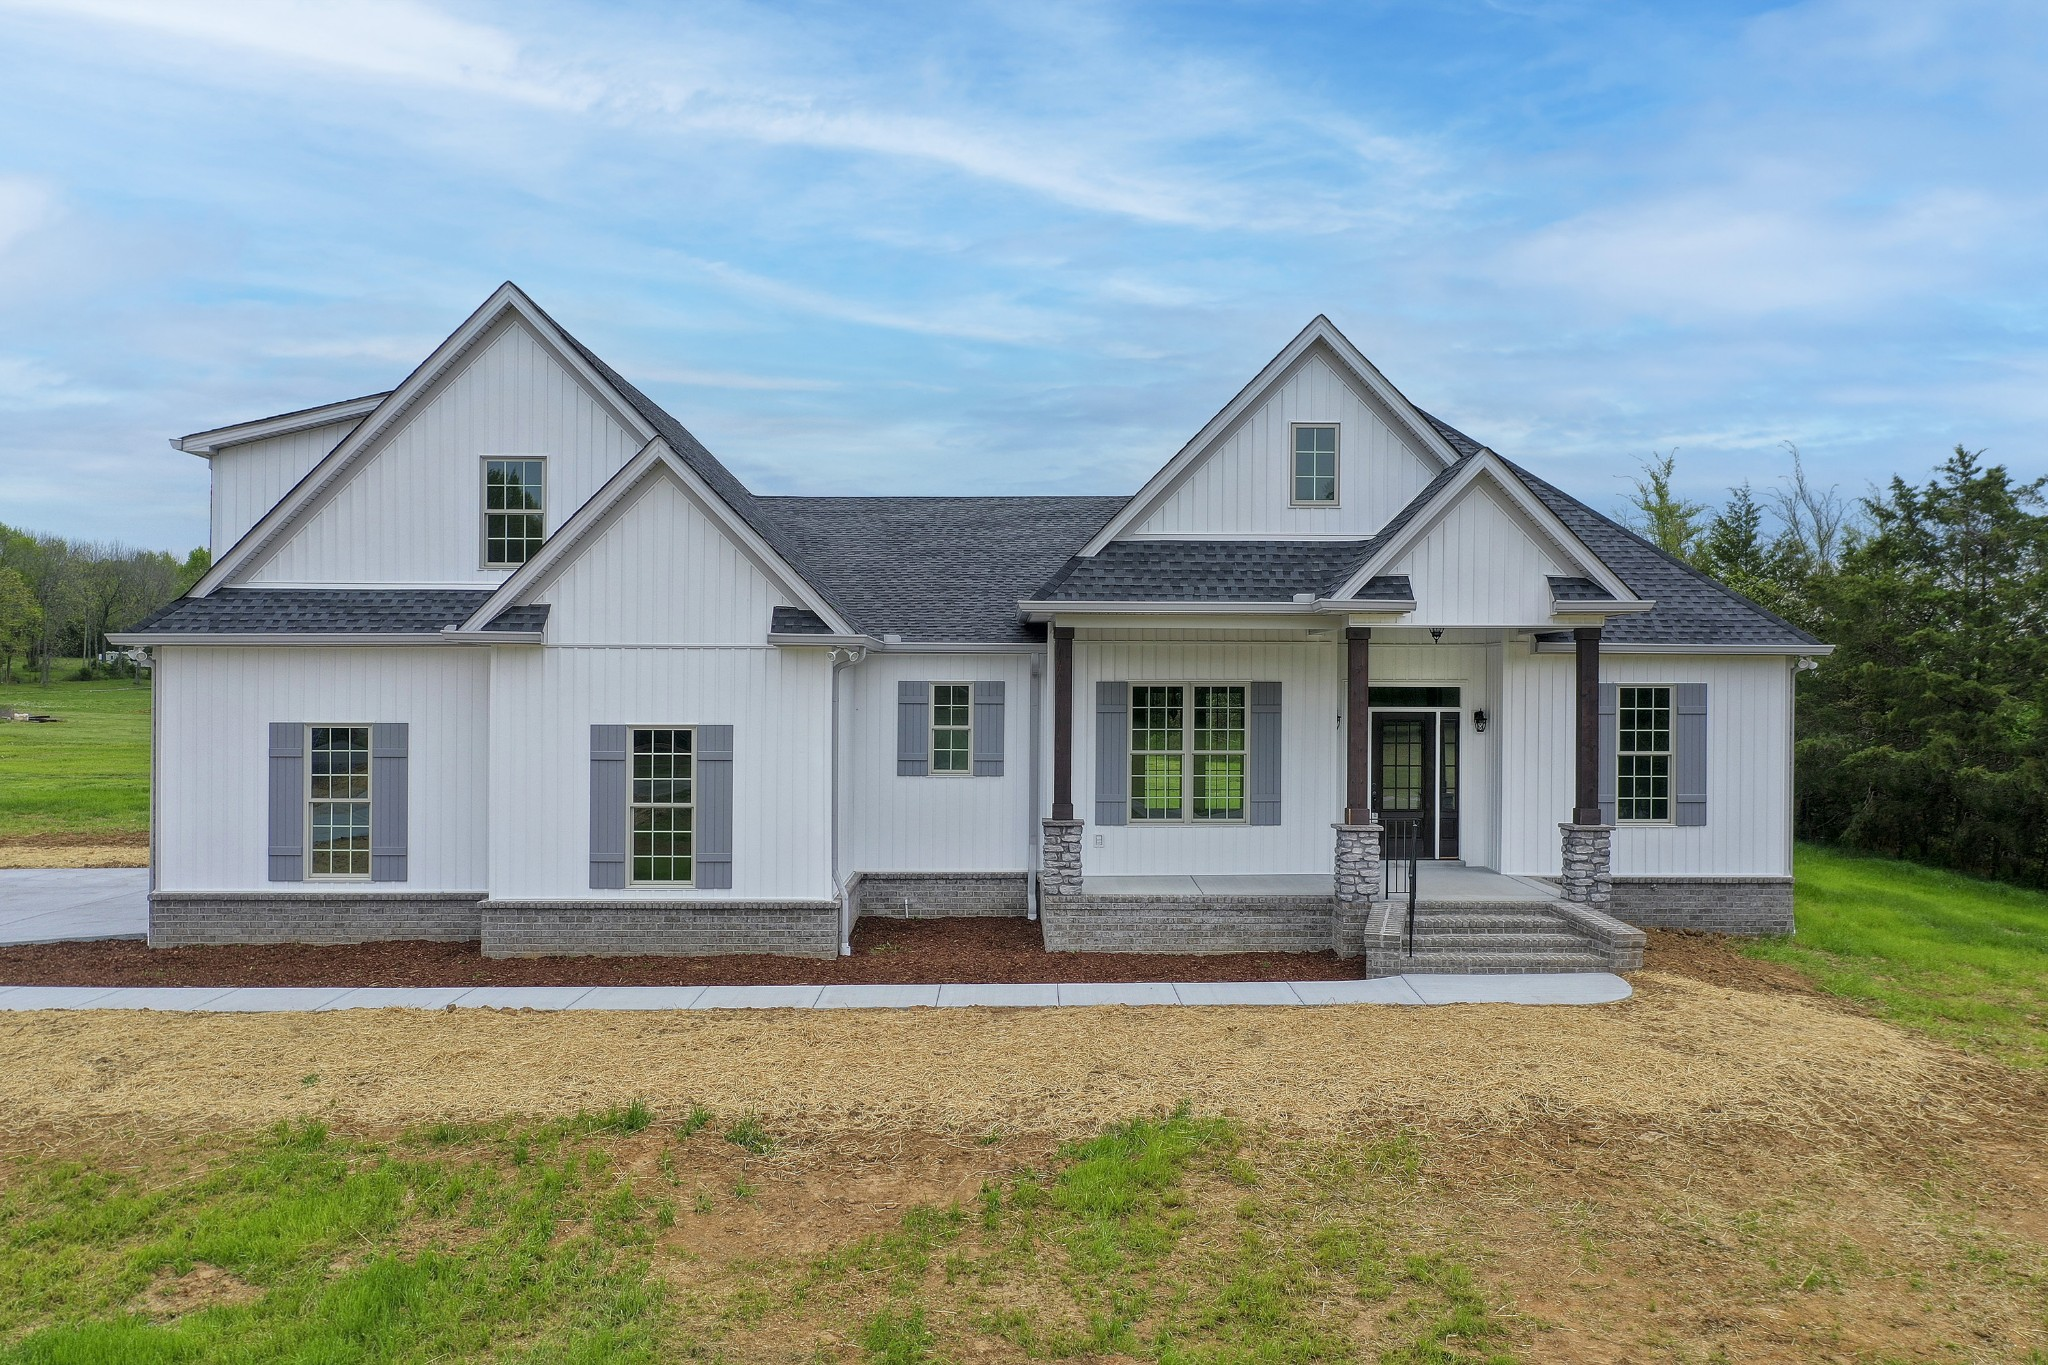 850 Harkreader Rd Property Photo - Mount Juliet, TN real estate listing